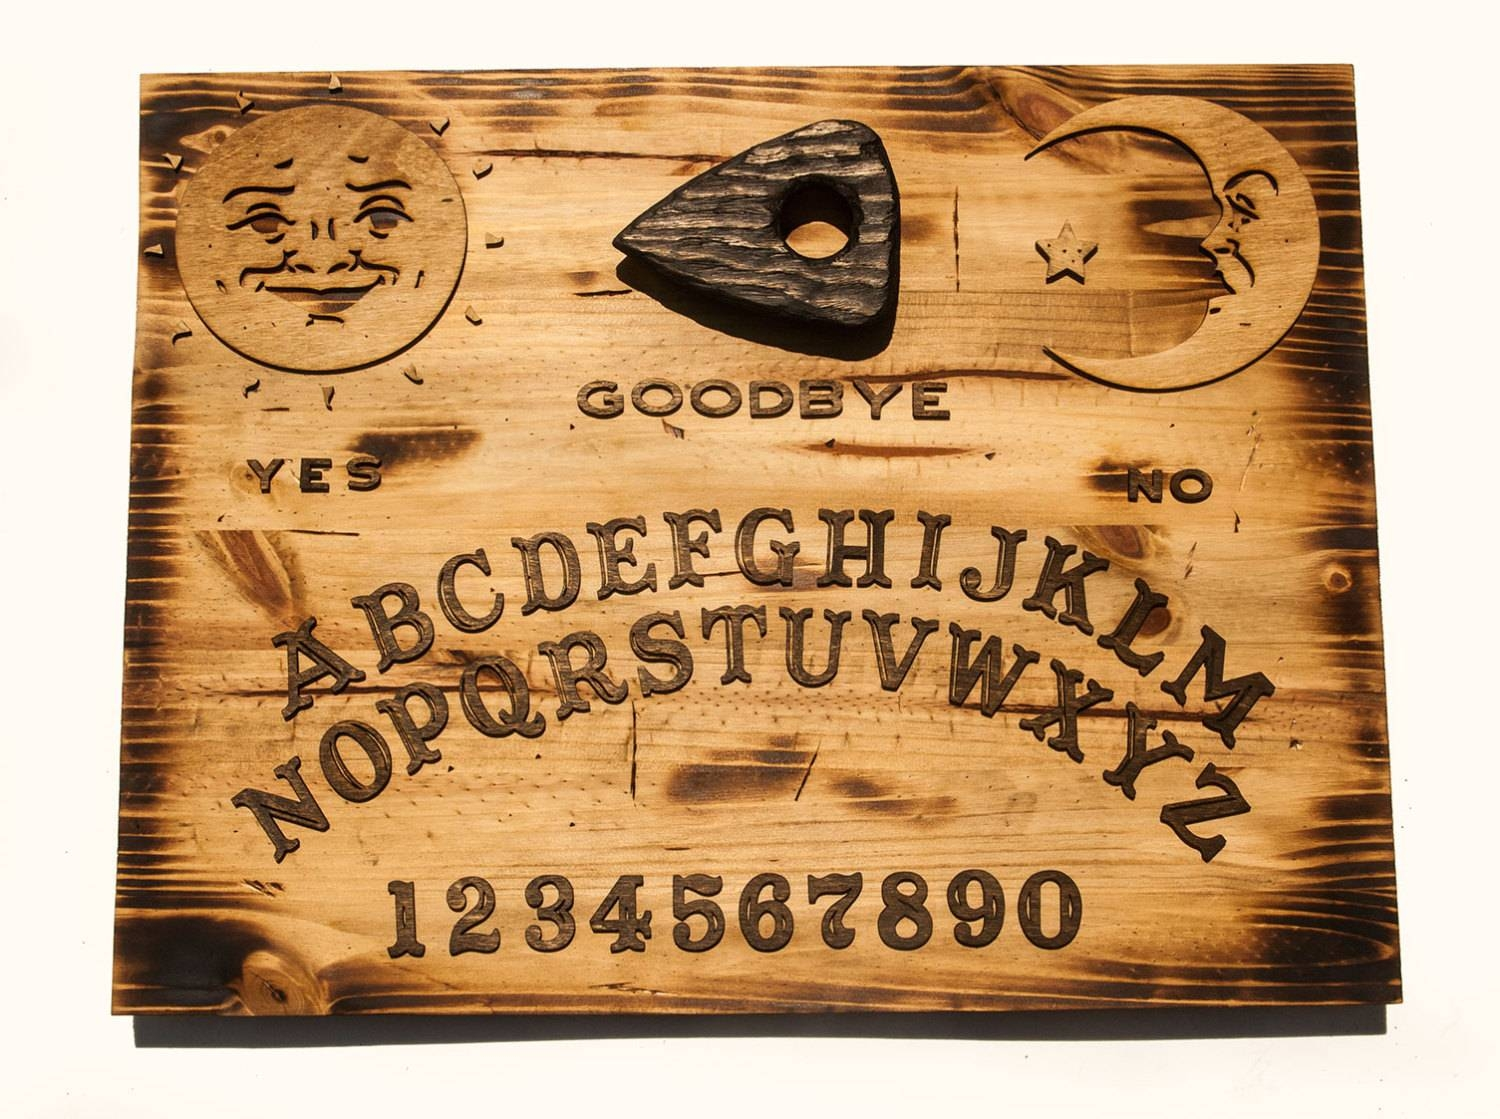 3D Sculptured Wall Hanging Wooden Ouija Board Art., Rustic, Sepia Regarding Most Recently Released Vintage 3D Wall Art (Gallery 13 of 20)